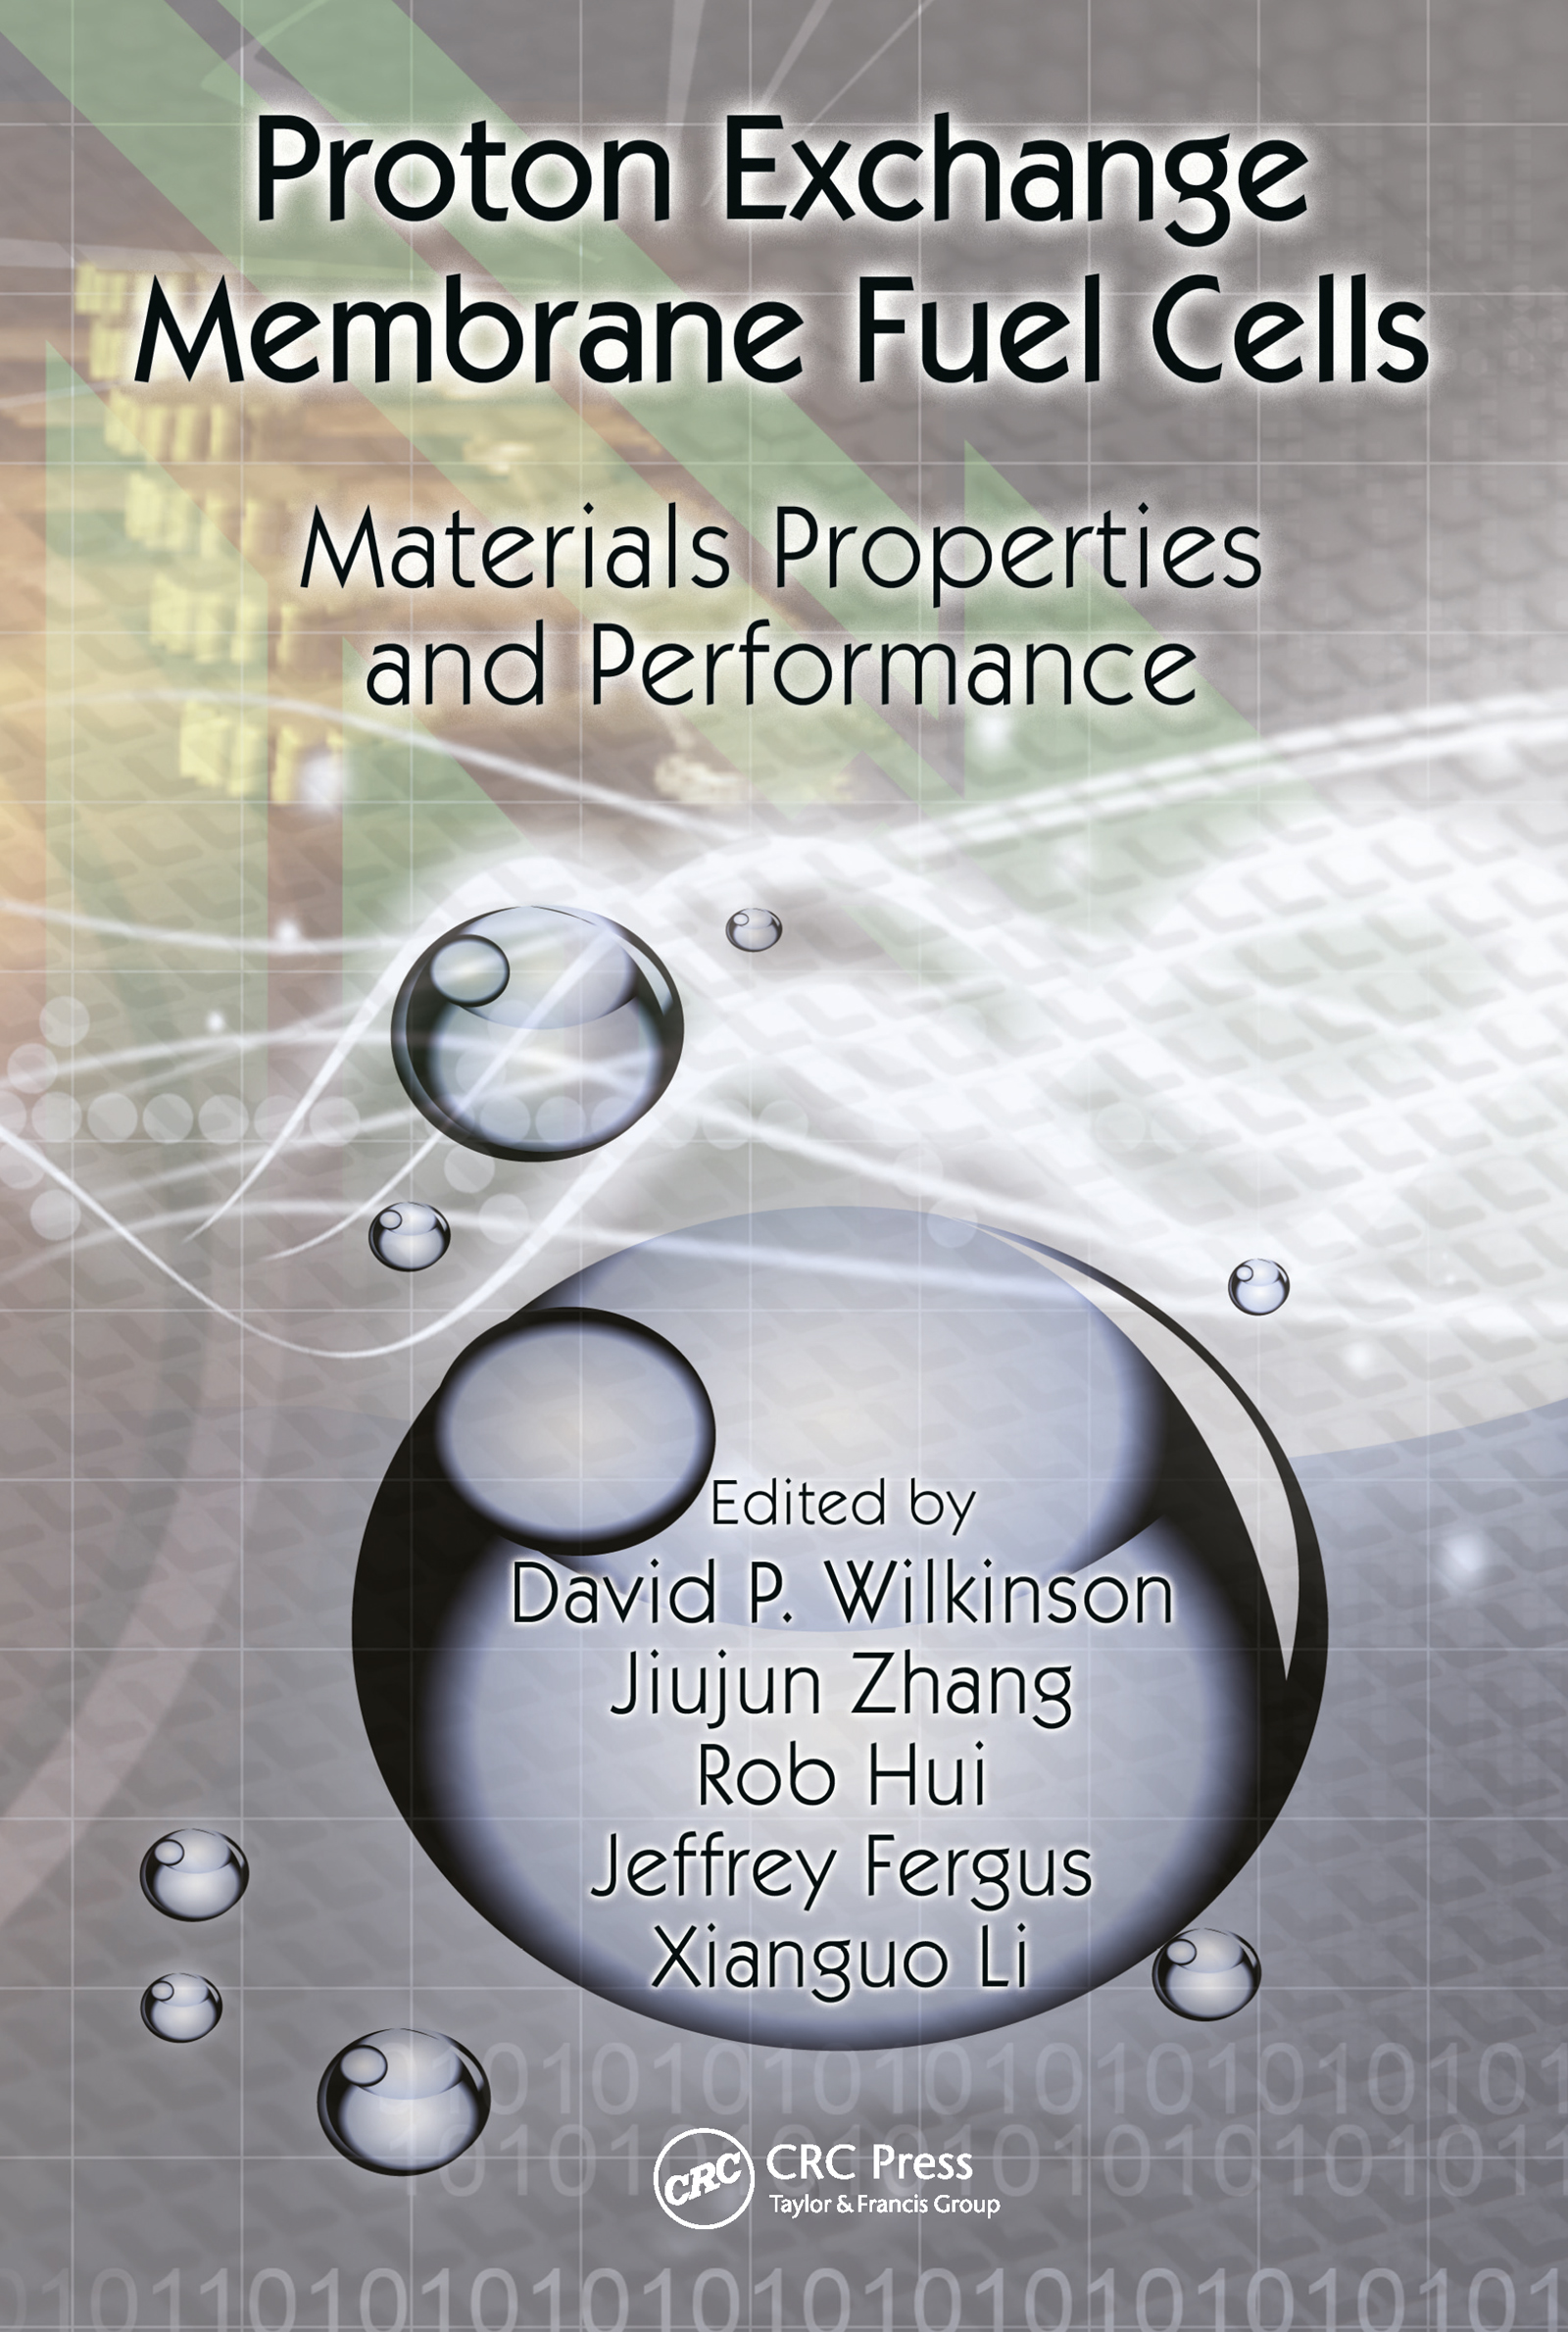 Proton Exchange Membrane Fuel Cells: Materials Properties and Performance book cover